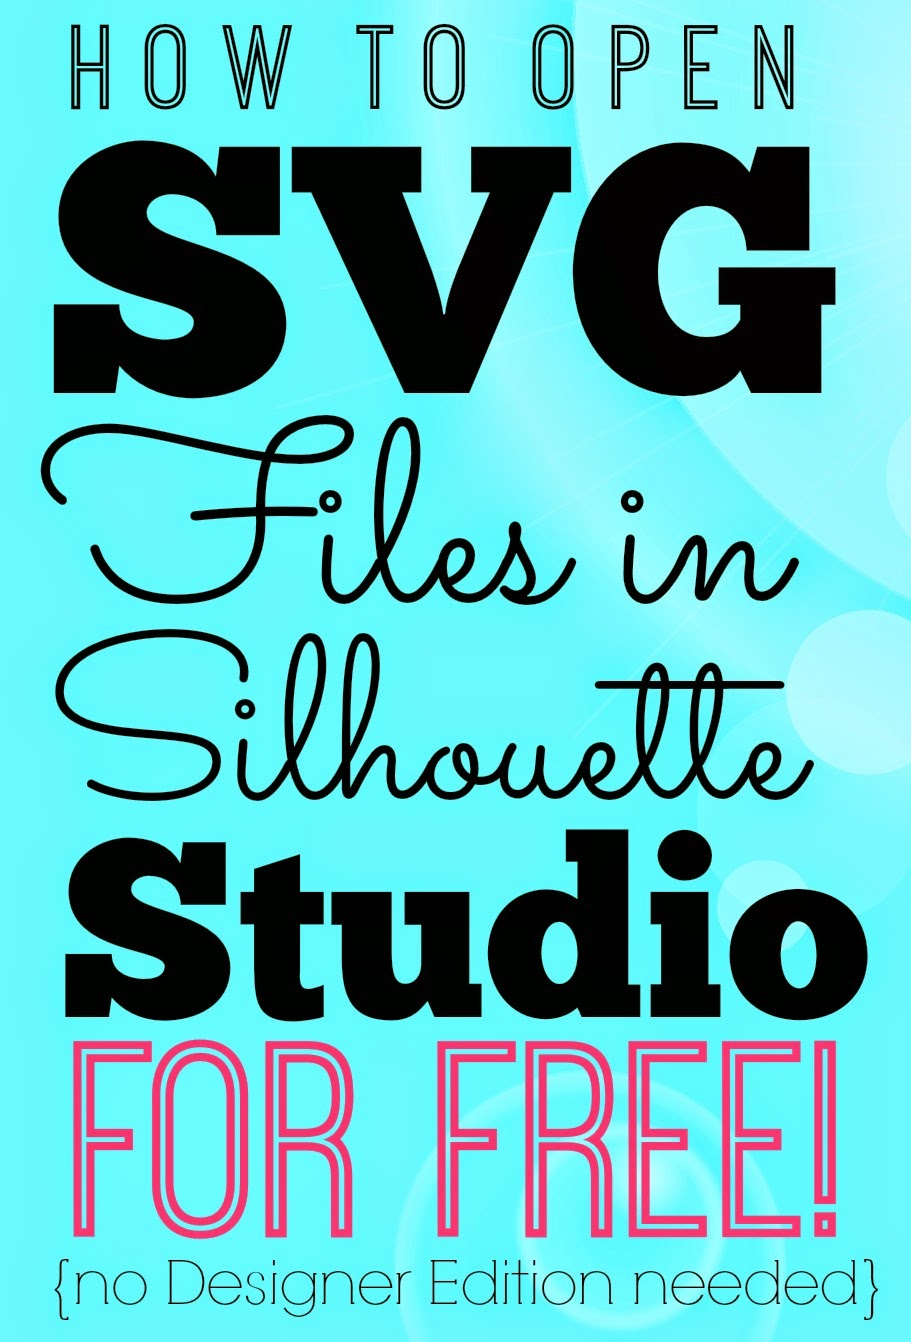 Silhouette Studio, SVG, SVG files, free, Designer Edition